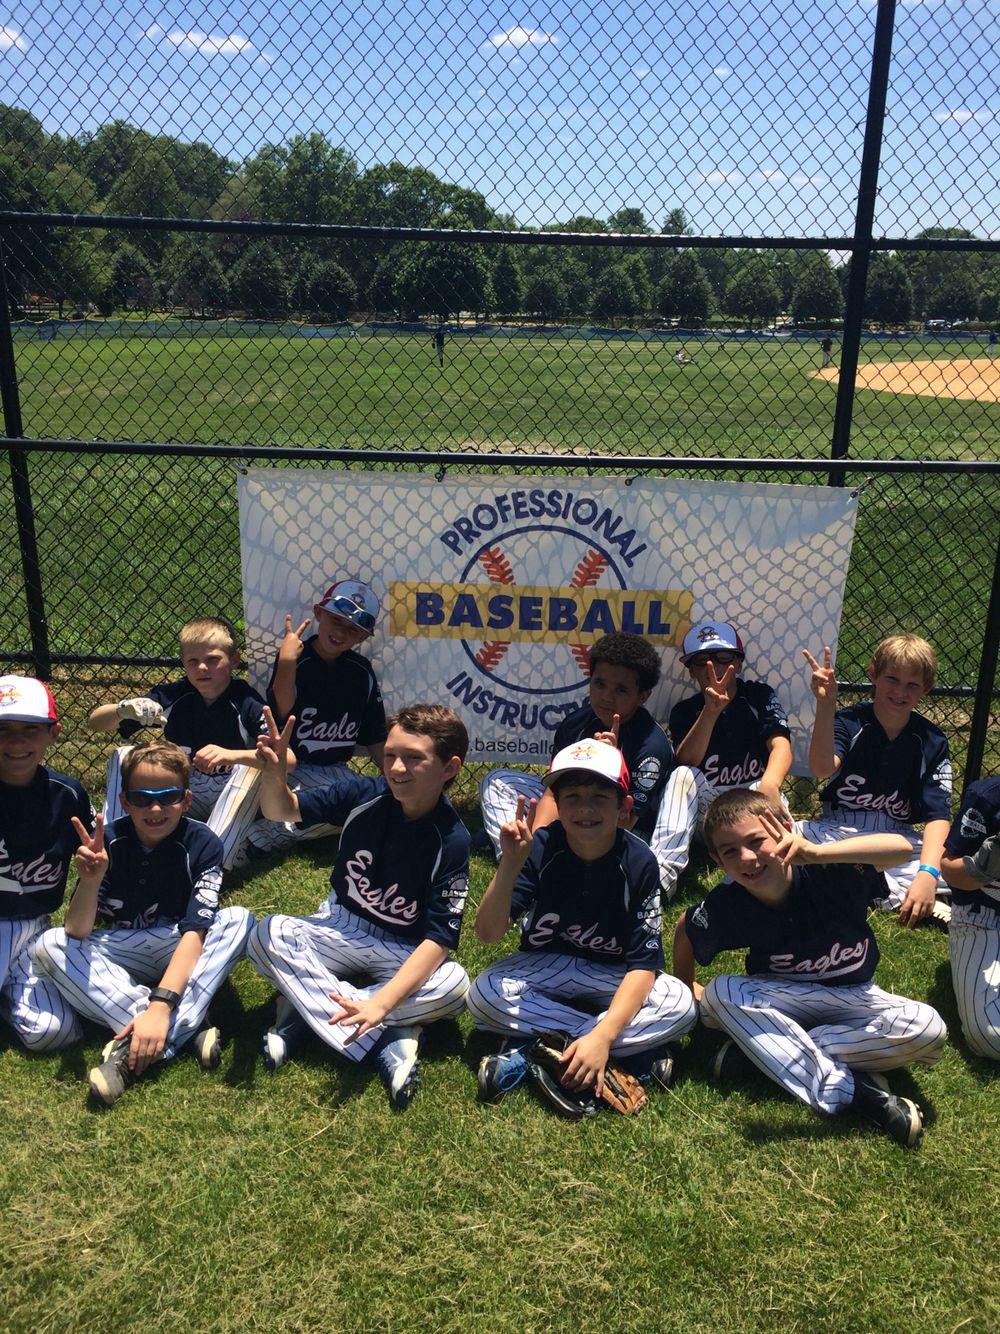 Pbi Baseball League Spring 2015 Season 9u A Division Runners Up 9u Eagles June 2015 Baseball League Club Baseball League